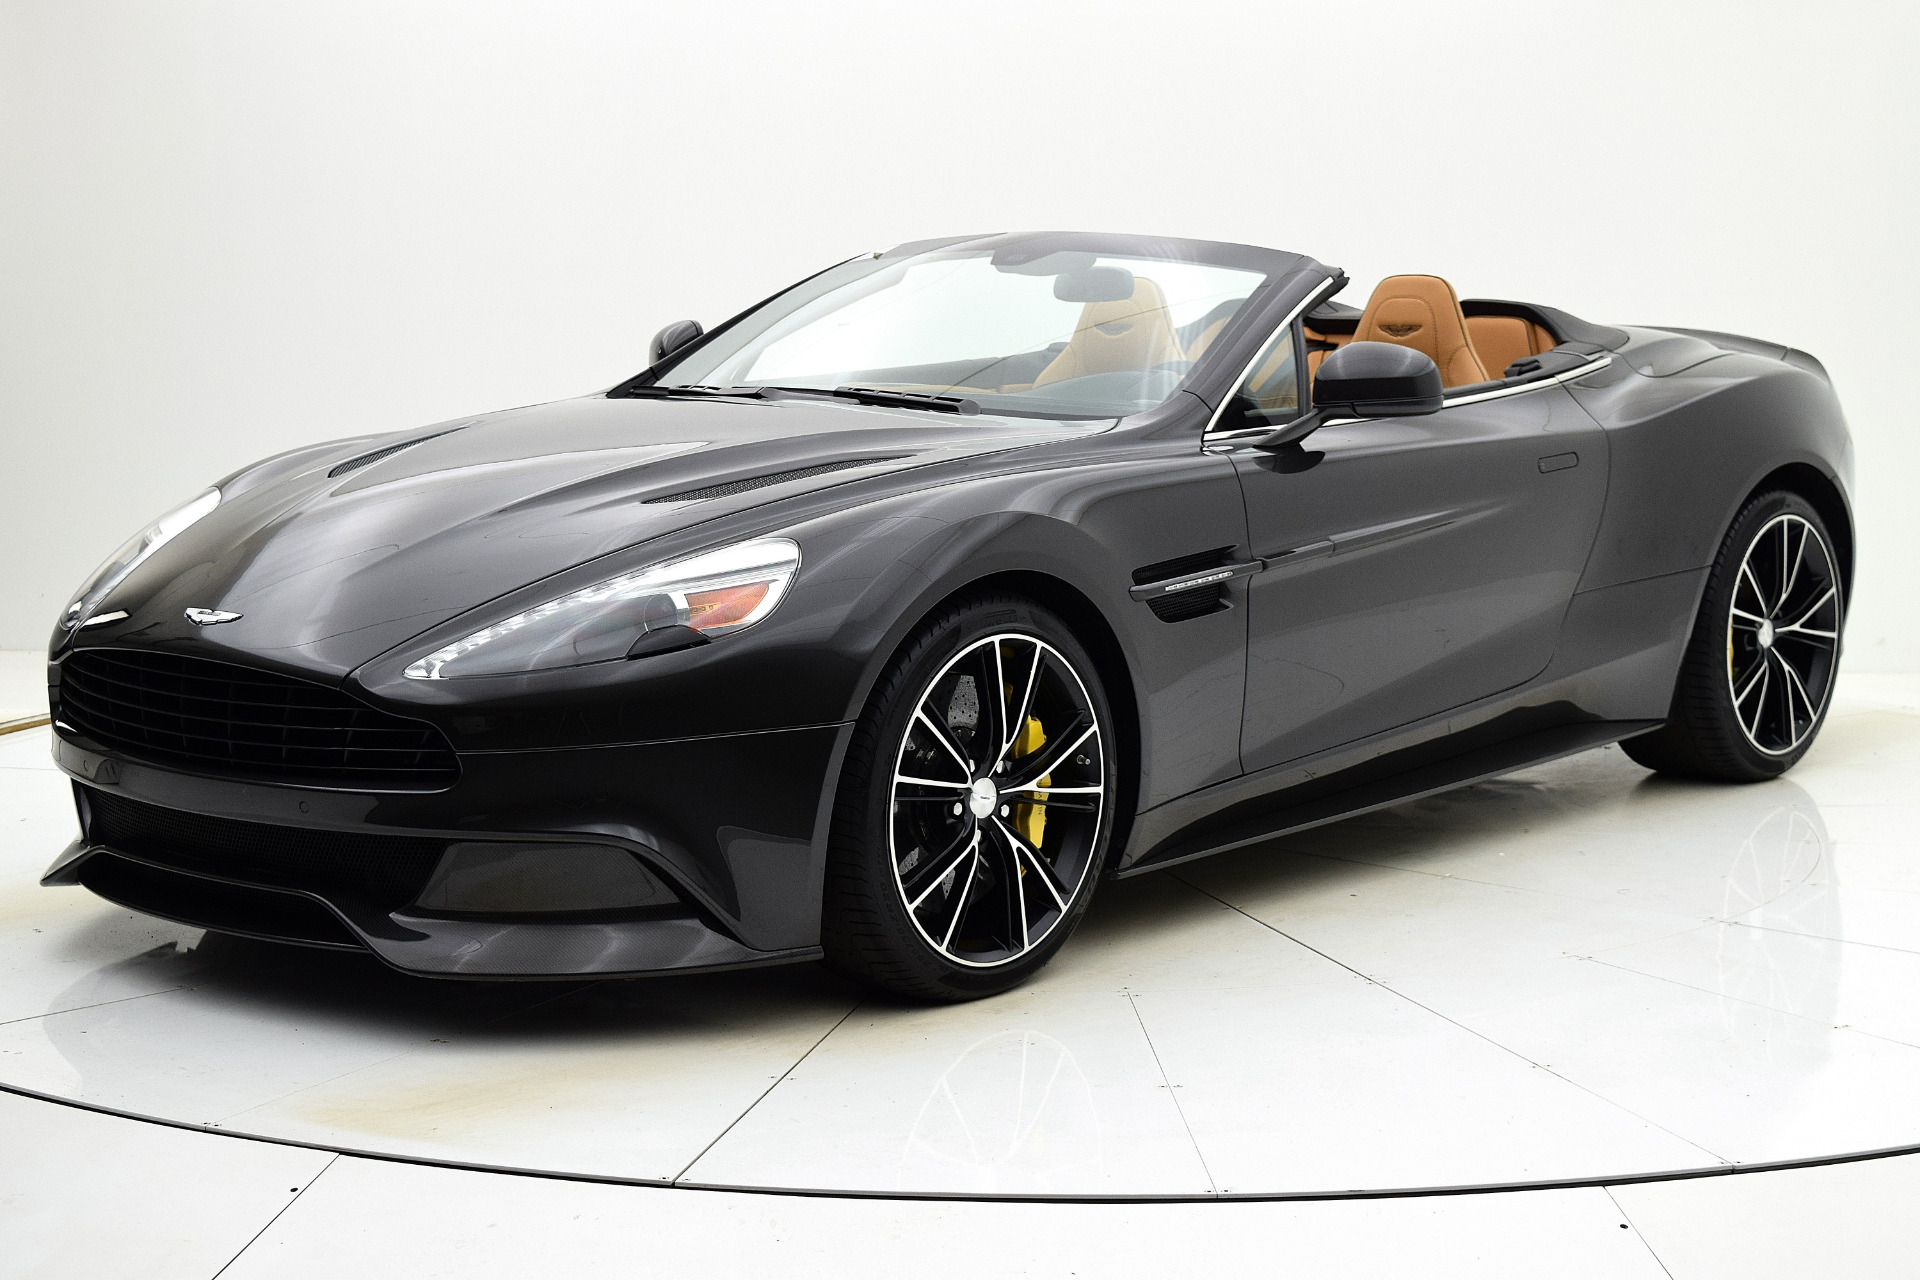 Used 2014 Aston Martin Vanquish Volante for sale Sold at F.C. Kerbeck Aston Martin in Palmyra NJ 08065 2